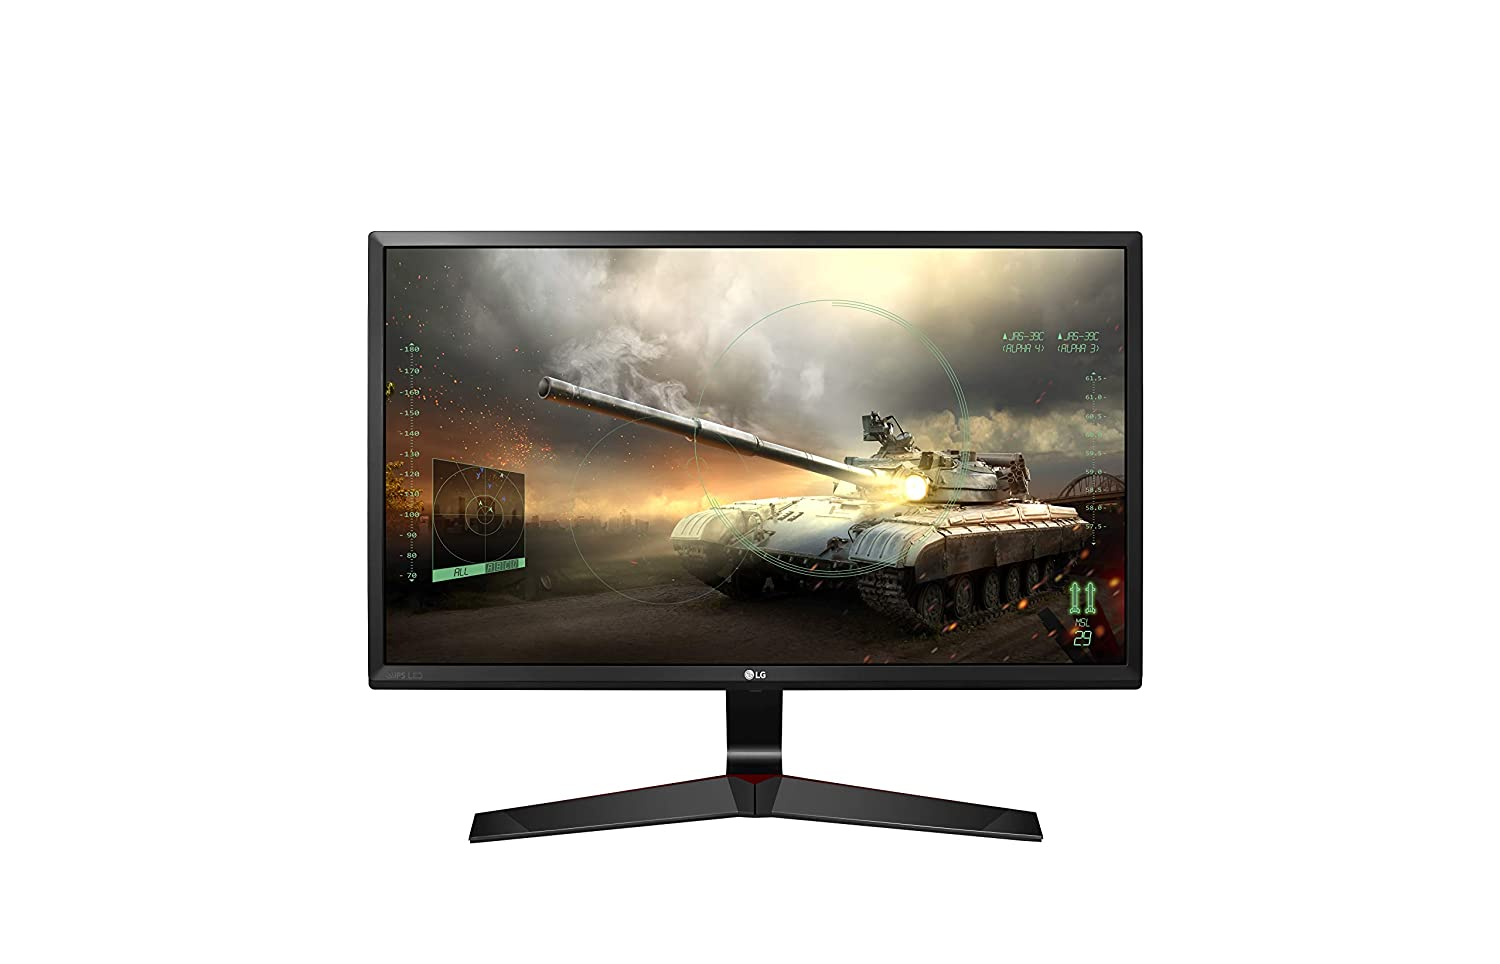 LG 24 inch Gaming Monitor - 1ms Refresh Rate , monitor for gaming , best monitor for gaming purpose, gaming monitor